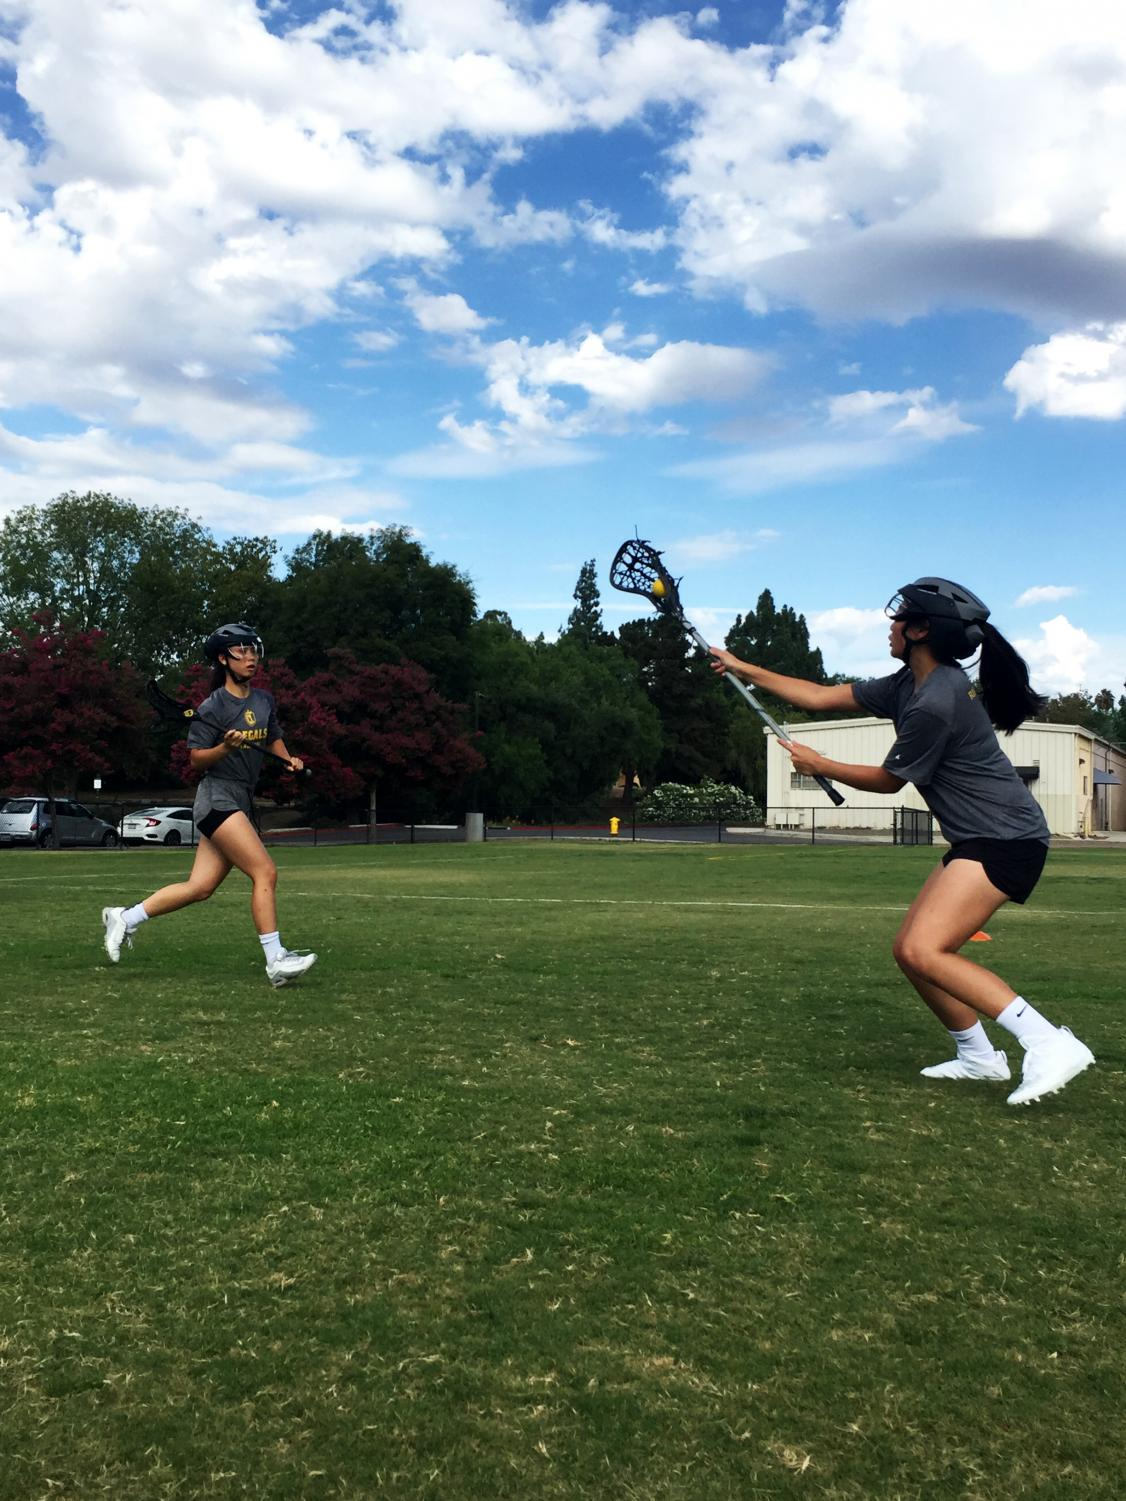 The Regals practice for their upcoming Southern California Intercollegiate Athletic Conference season this spring.